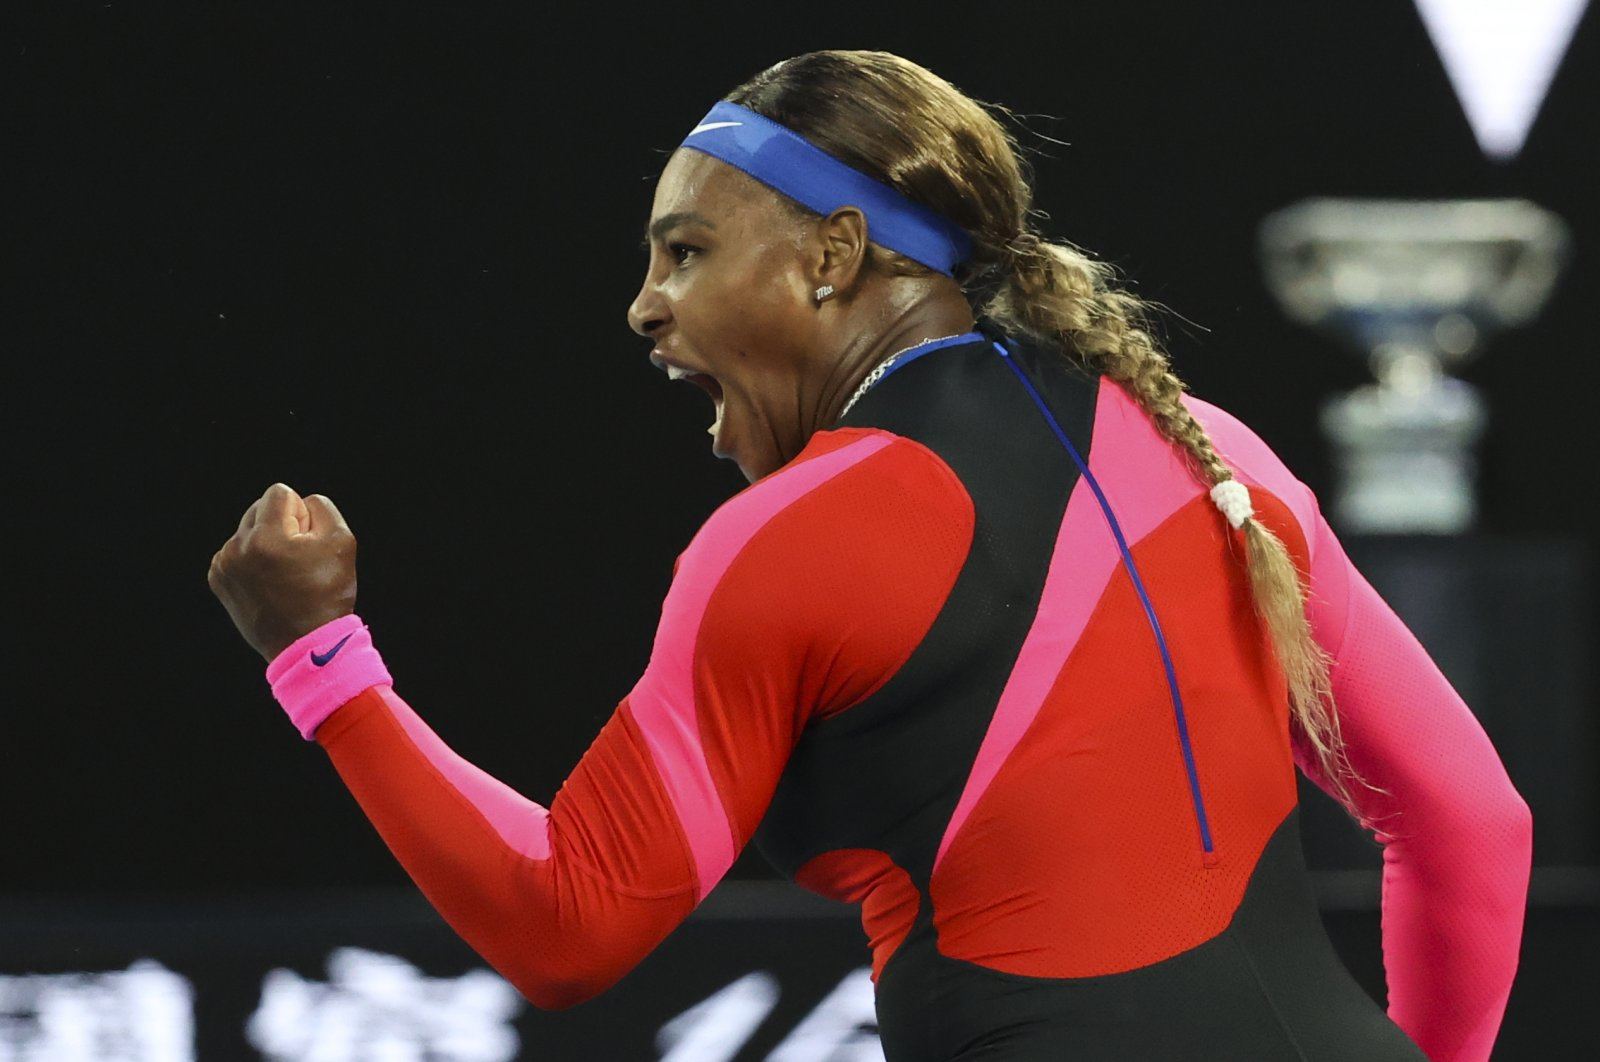 U.S.' Serena Williams reacts after winning a point against Romania's Simona Halep during their quarterfinal match at the Australian Open tennis championship in Melbourne, Australia, Feb. 16, 2021. (AP Photo)